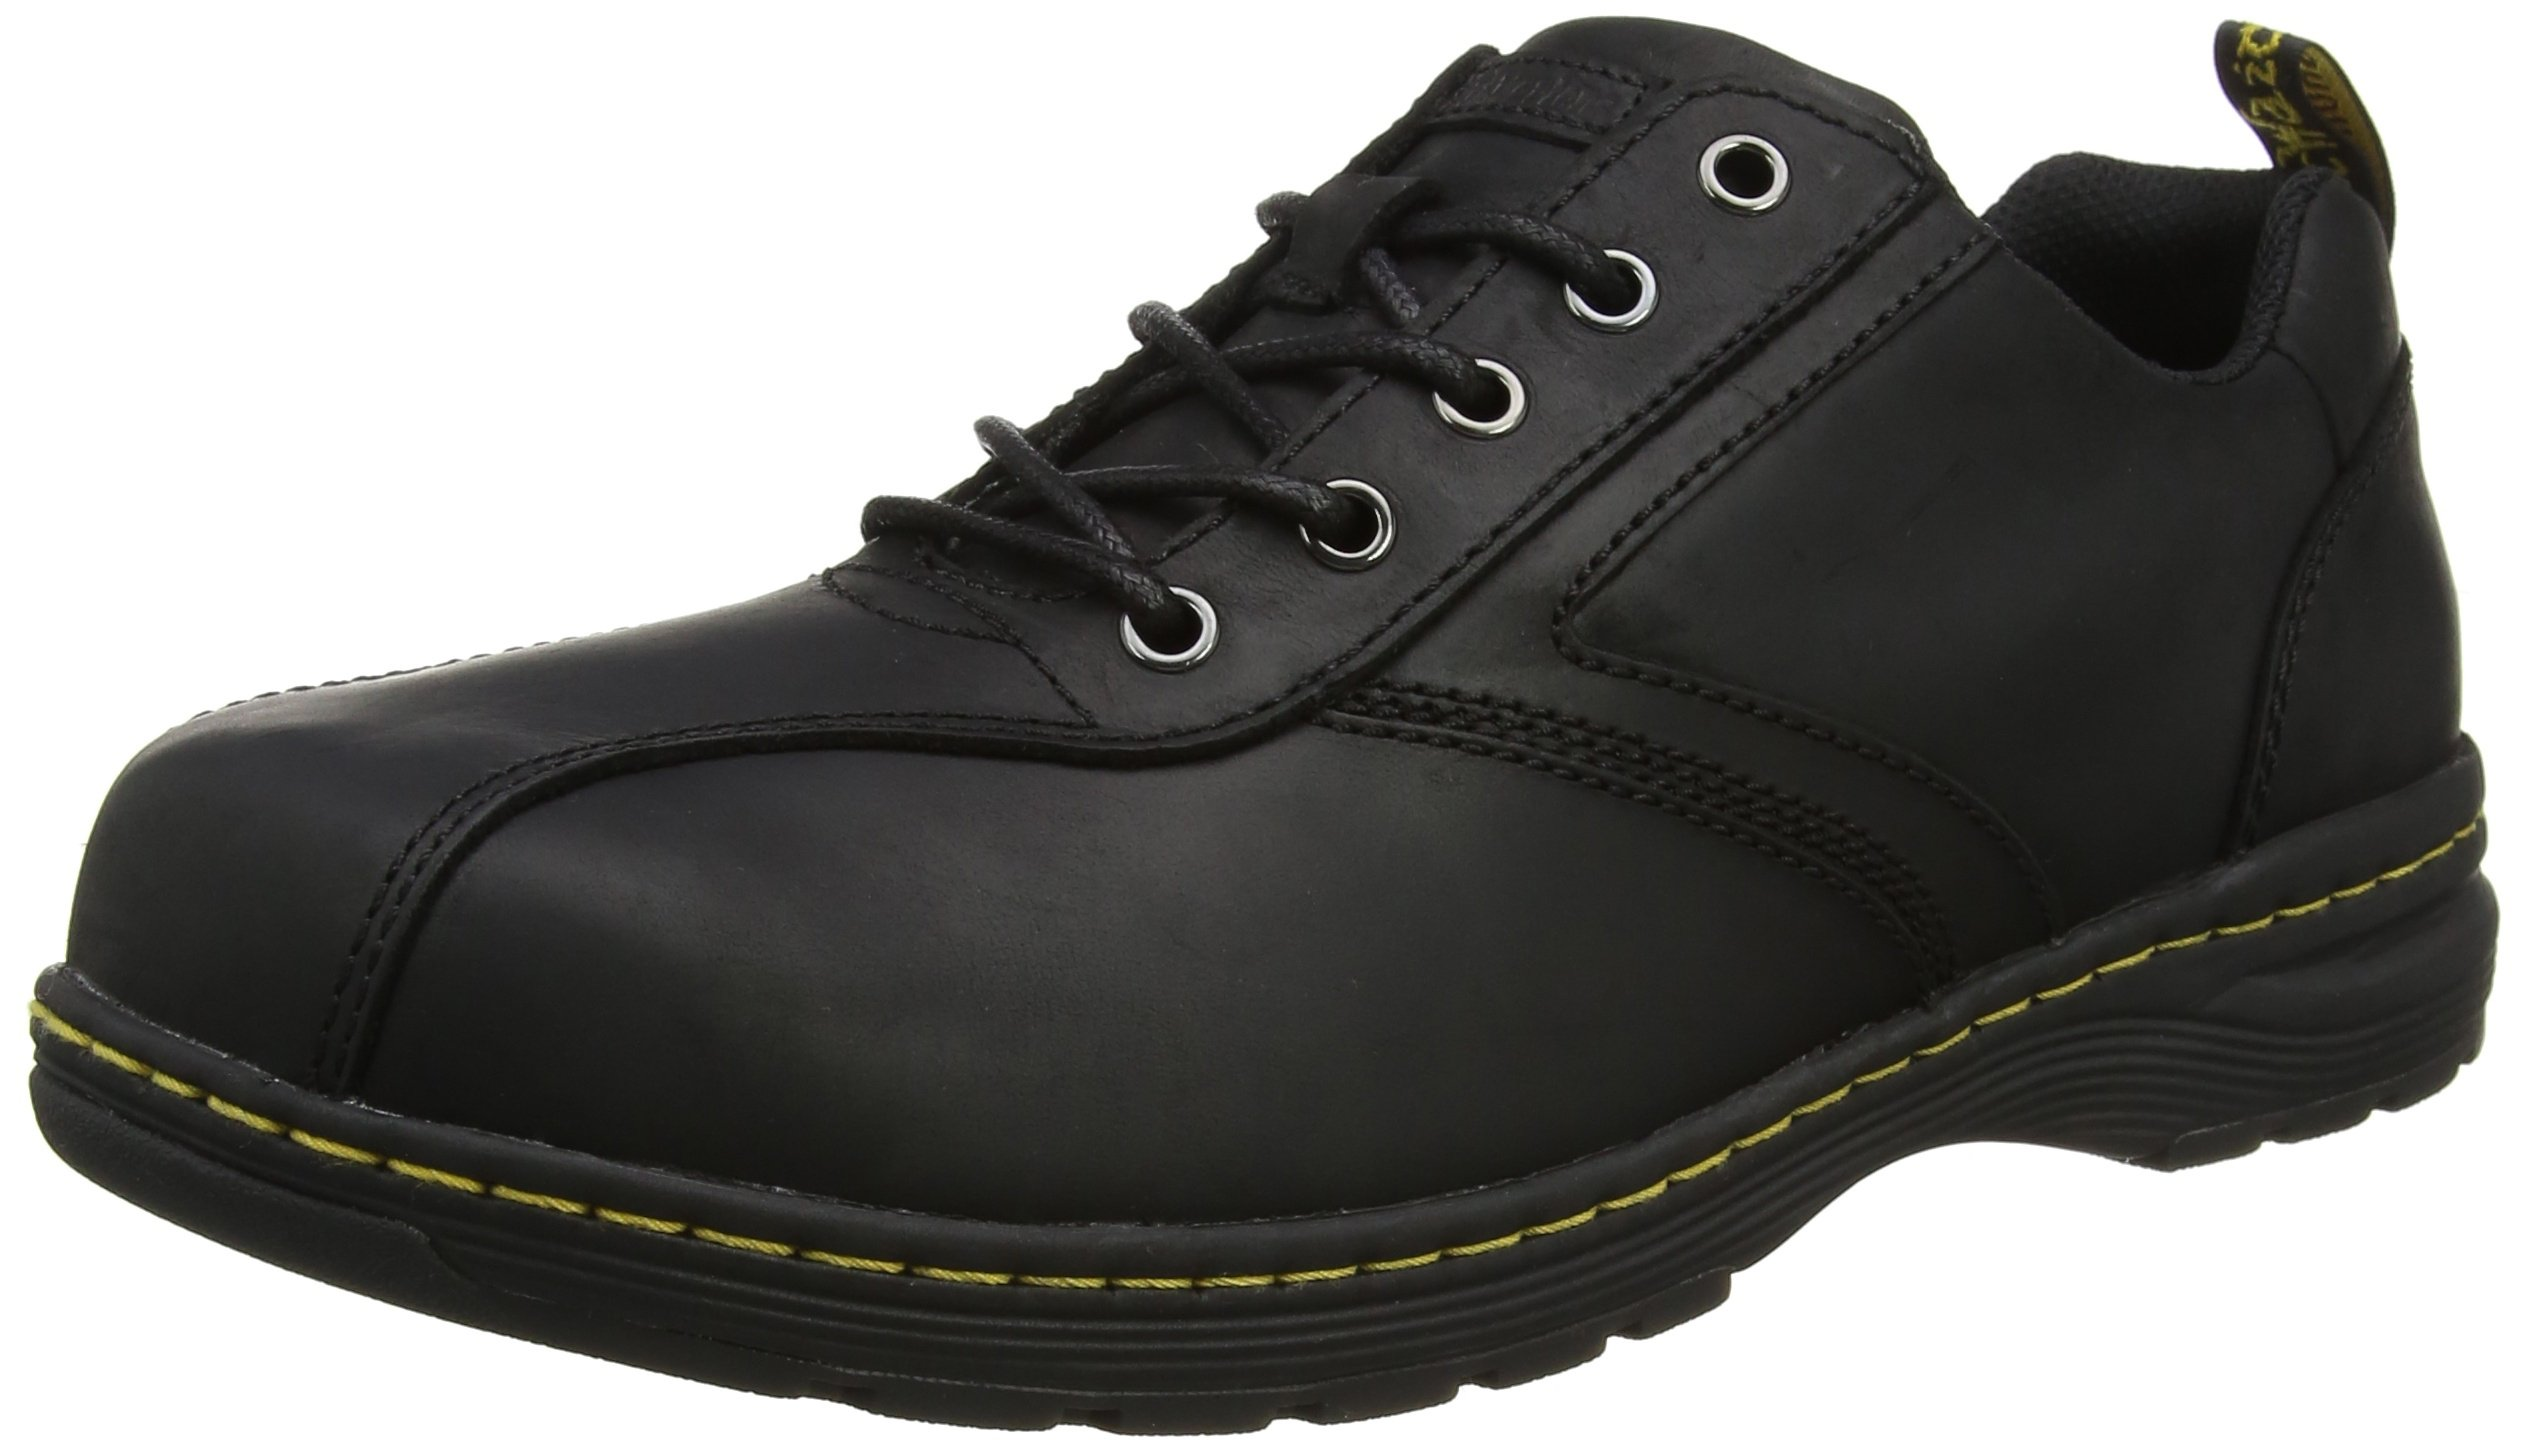 Dr. Martens Men's Greig Oxford Boot, Black Republic, 8 Medium UK (9 US) by Dr. Martens